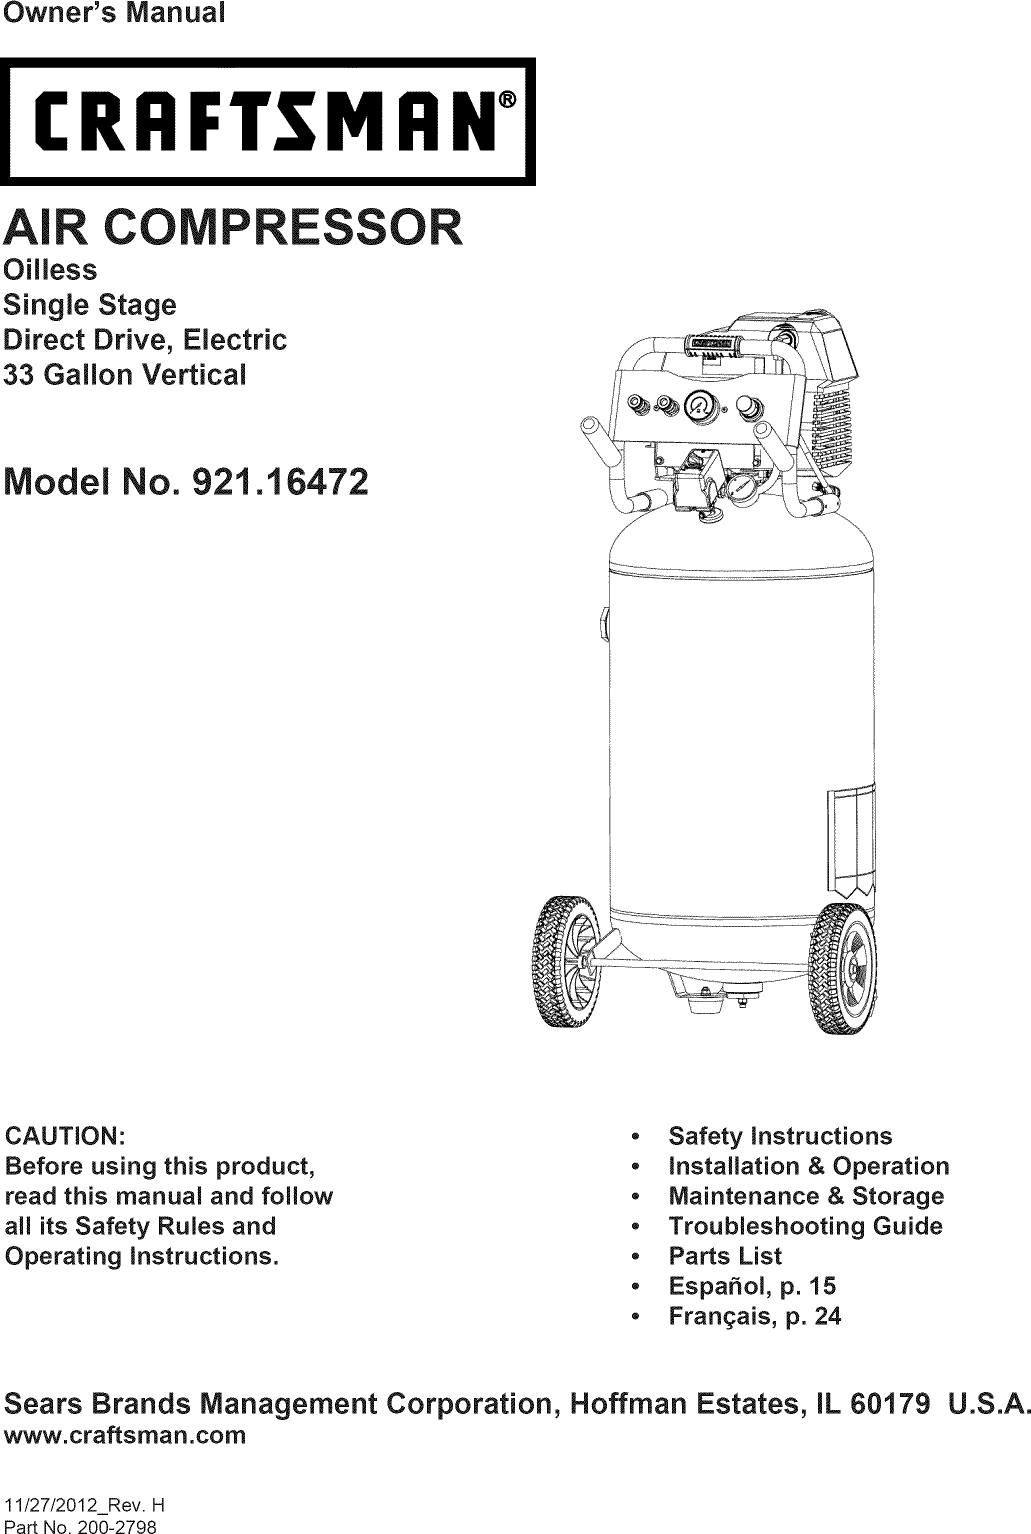 hight resolution of craftsman 92116472 2012 user manual air compressor manuals and guides 1310372l